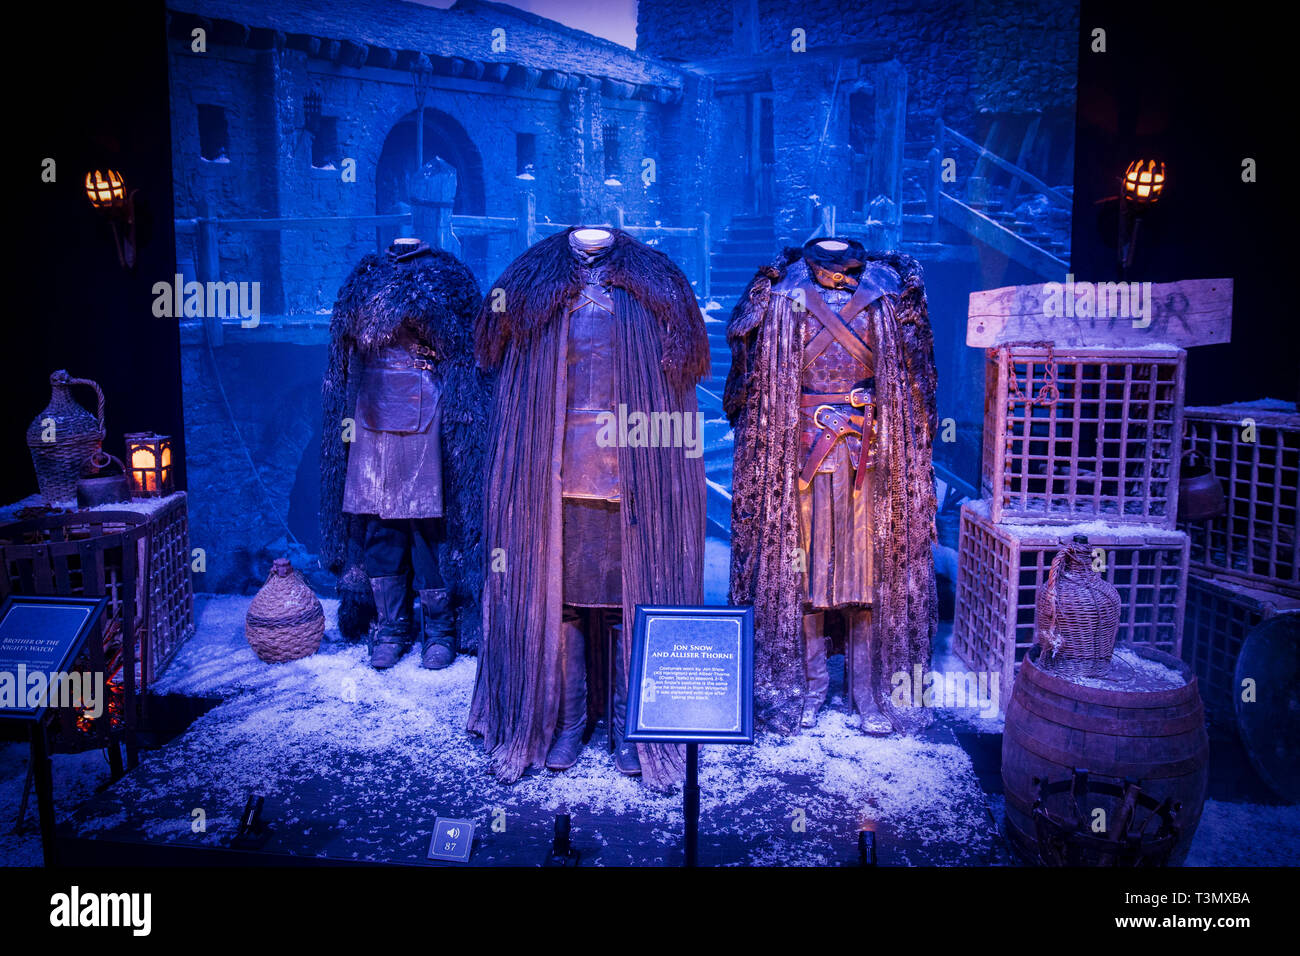 Costumes worn by the character Jon Snow, played by Kit Harington, and the character Alliser Thorne played, by Owen Teale, on display at the launch of the Game of Thrones touring exhibition at the Titanic Exhibition Centre in Belfast. - Stock Image